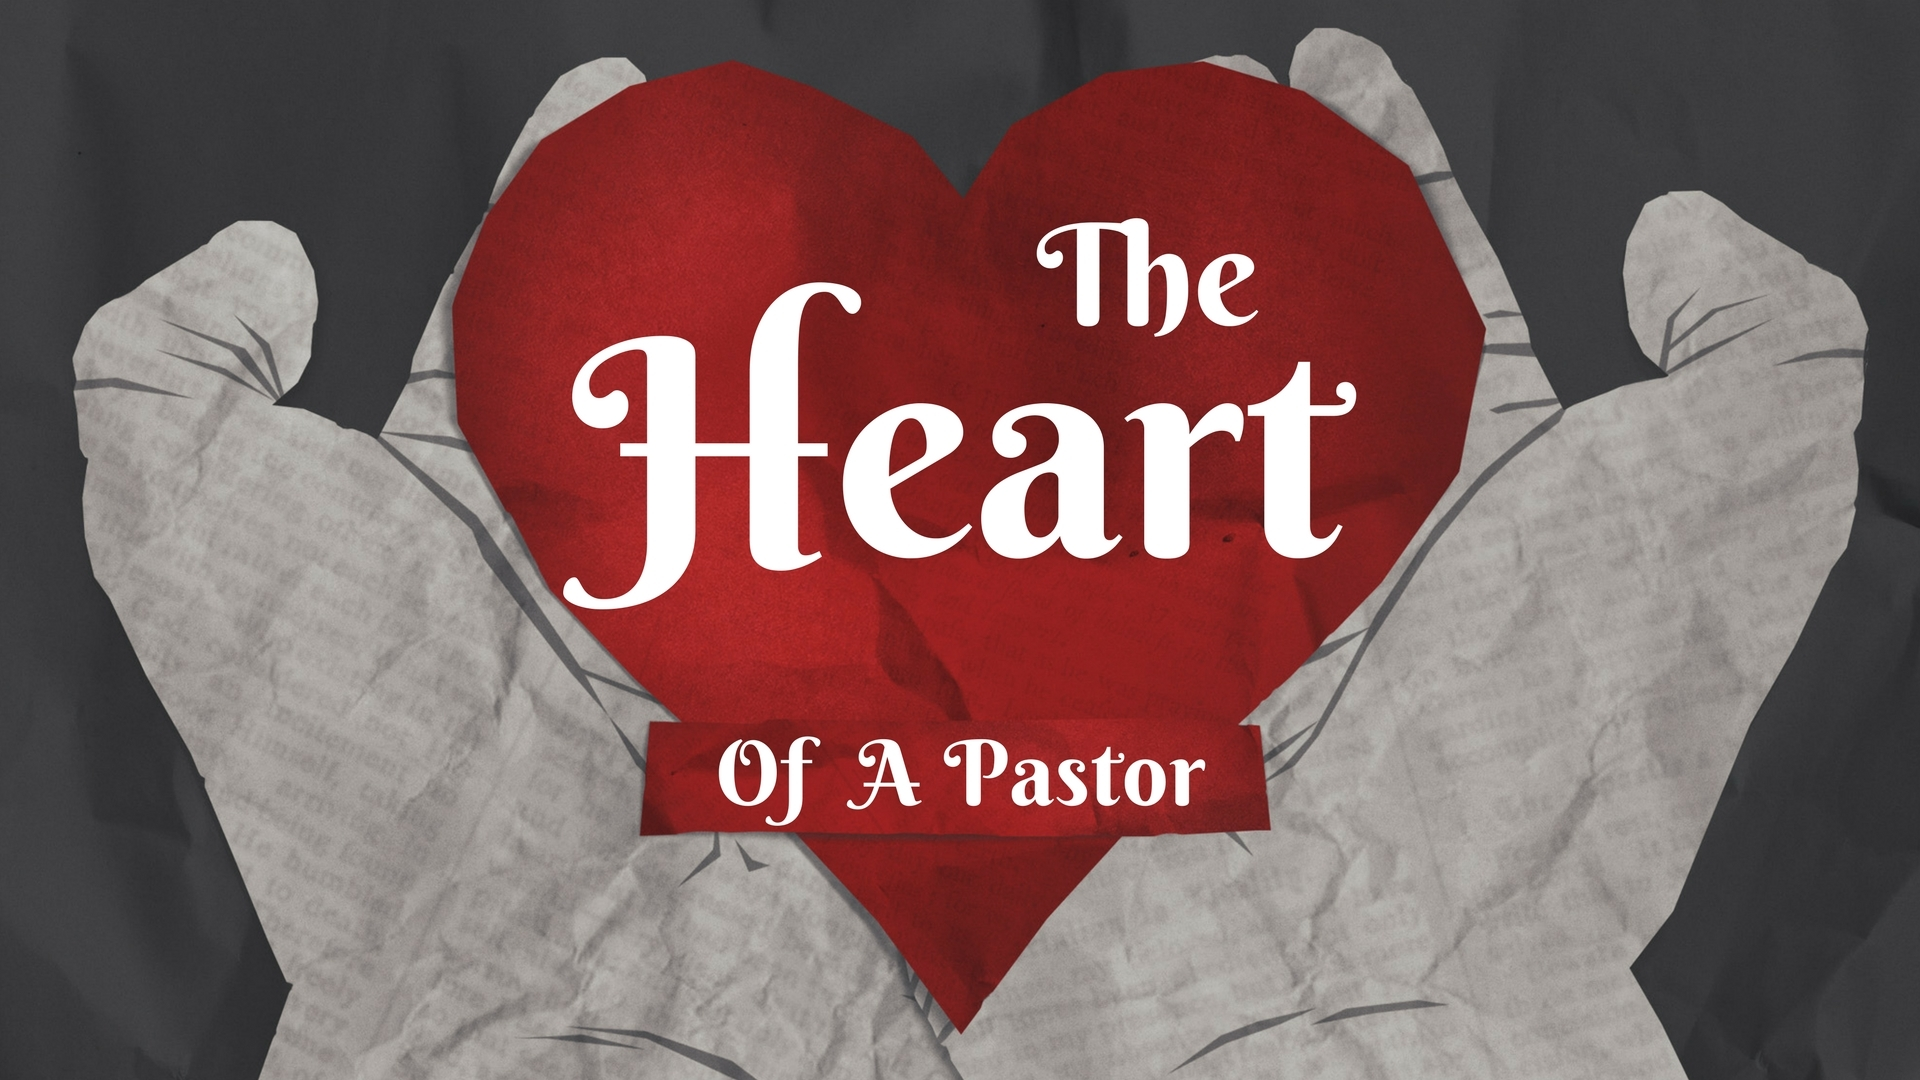 Sunday December 10, 2017 The Heart Of A Pastor - Pastor Anthony Cox